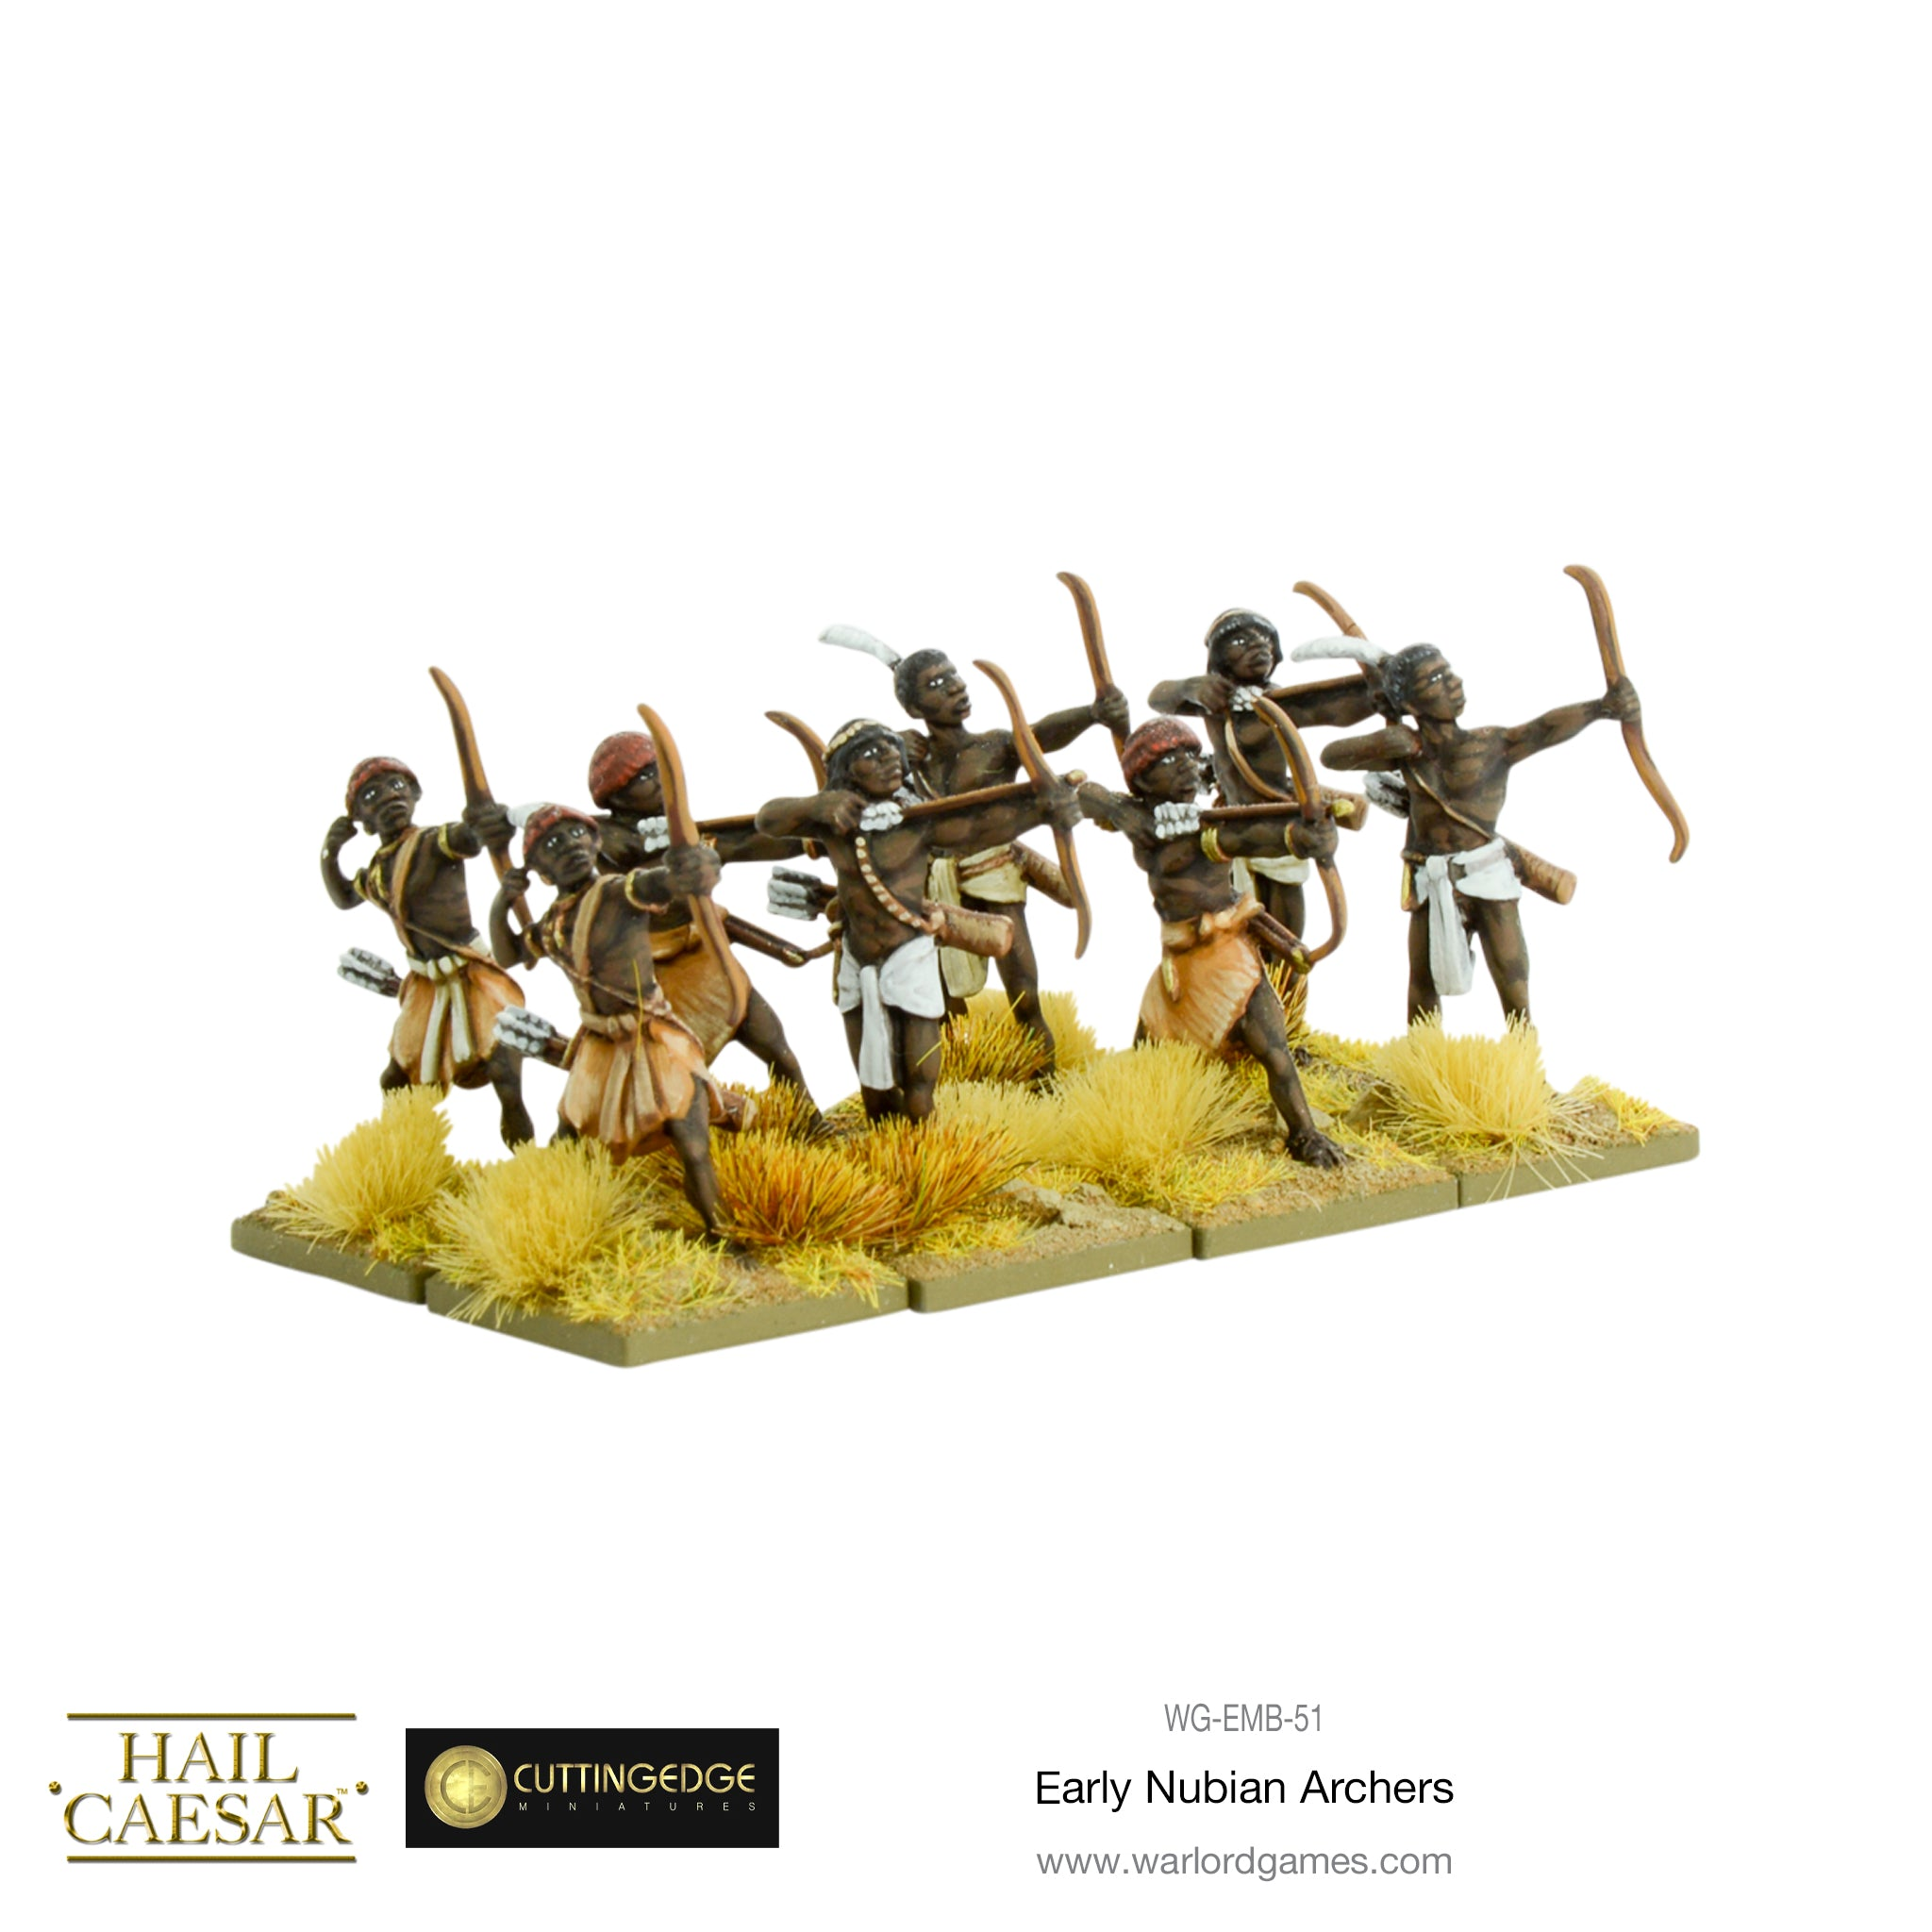 Early Nubian archers